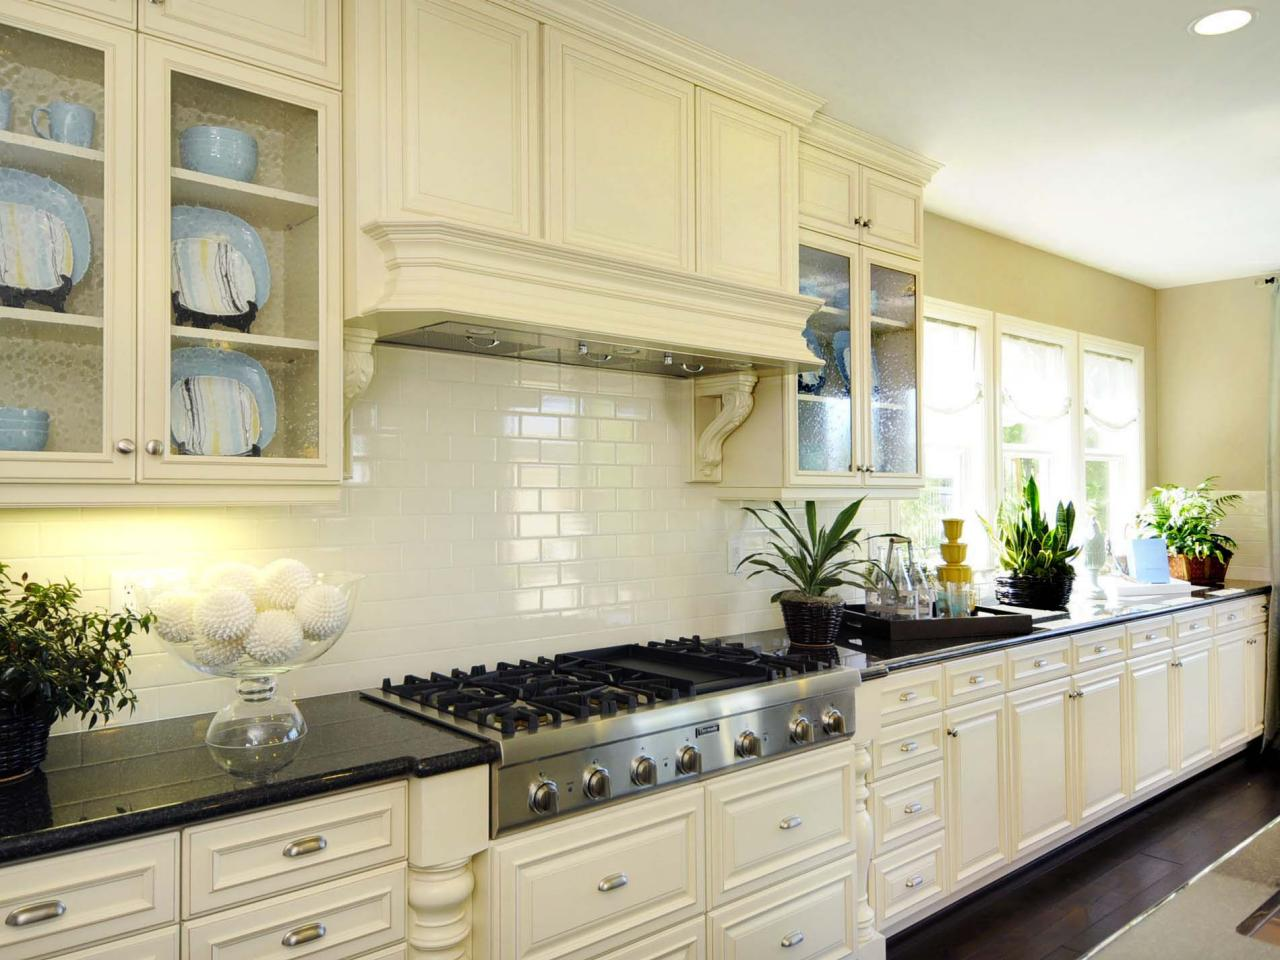 nice-classic-kitchen-tile-backsplash-ideas